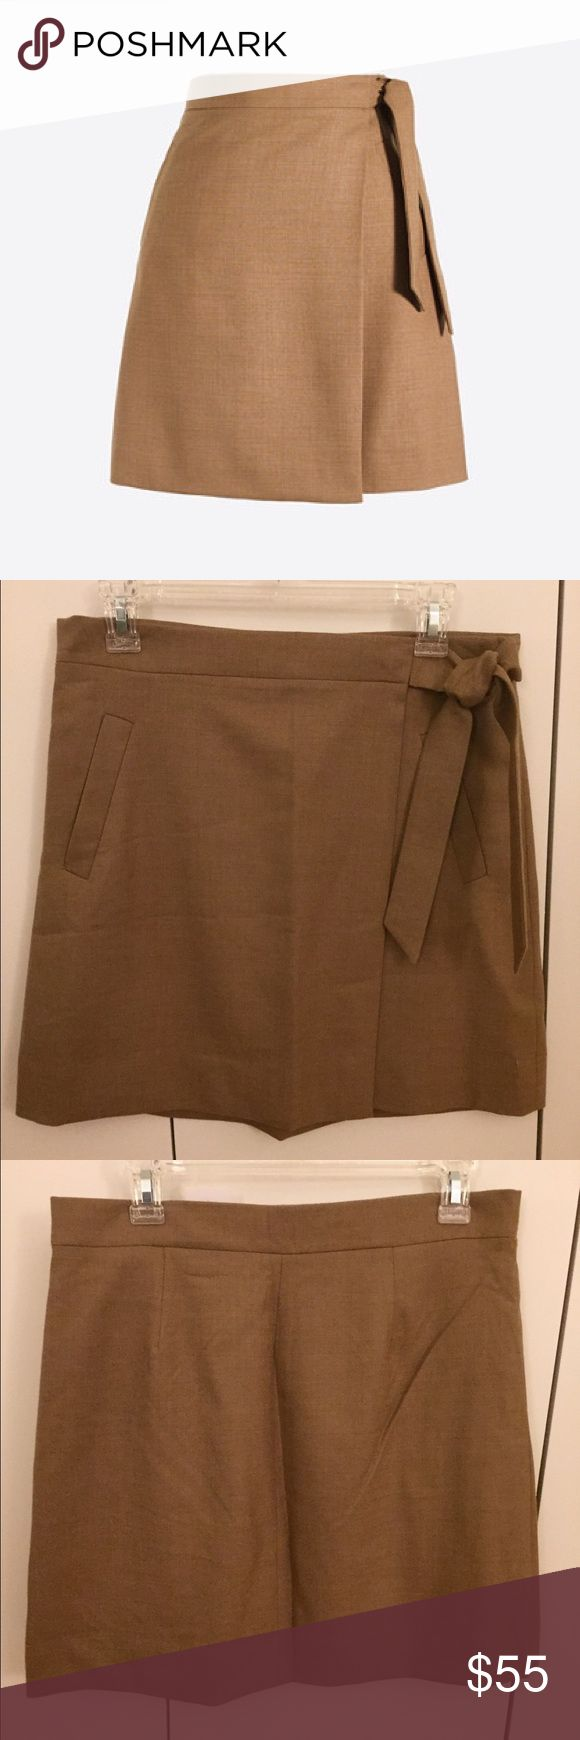 🎈NEW🎈 J. Crew Flannel Wrap Skirt 🎈NEW LISTING🎈 Brand new, never worn. Tan flannel material. Wrap skirt - two snap buttons to close and tie. J. Crew Skirts Mini